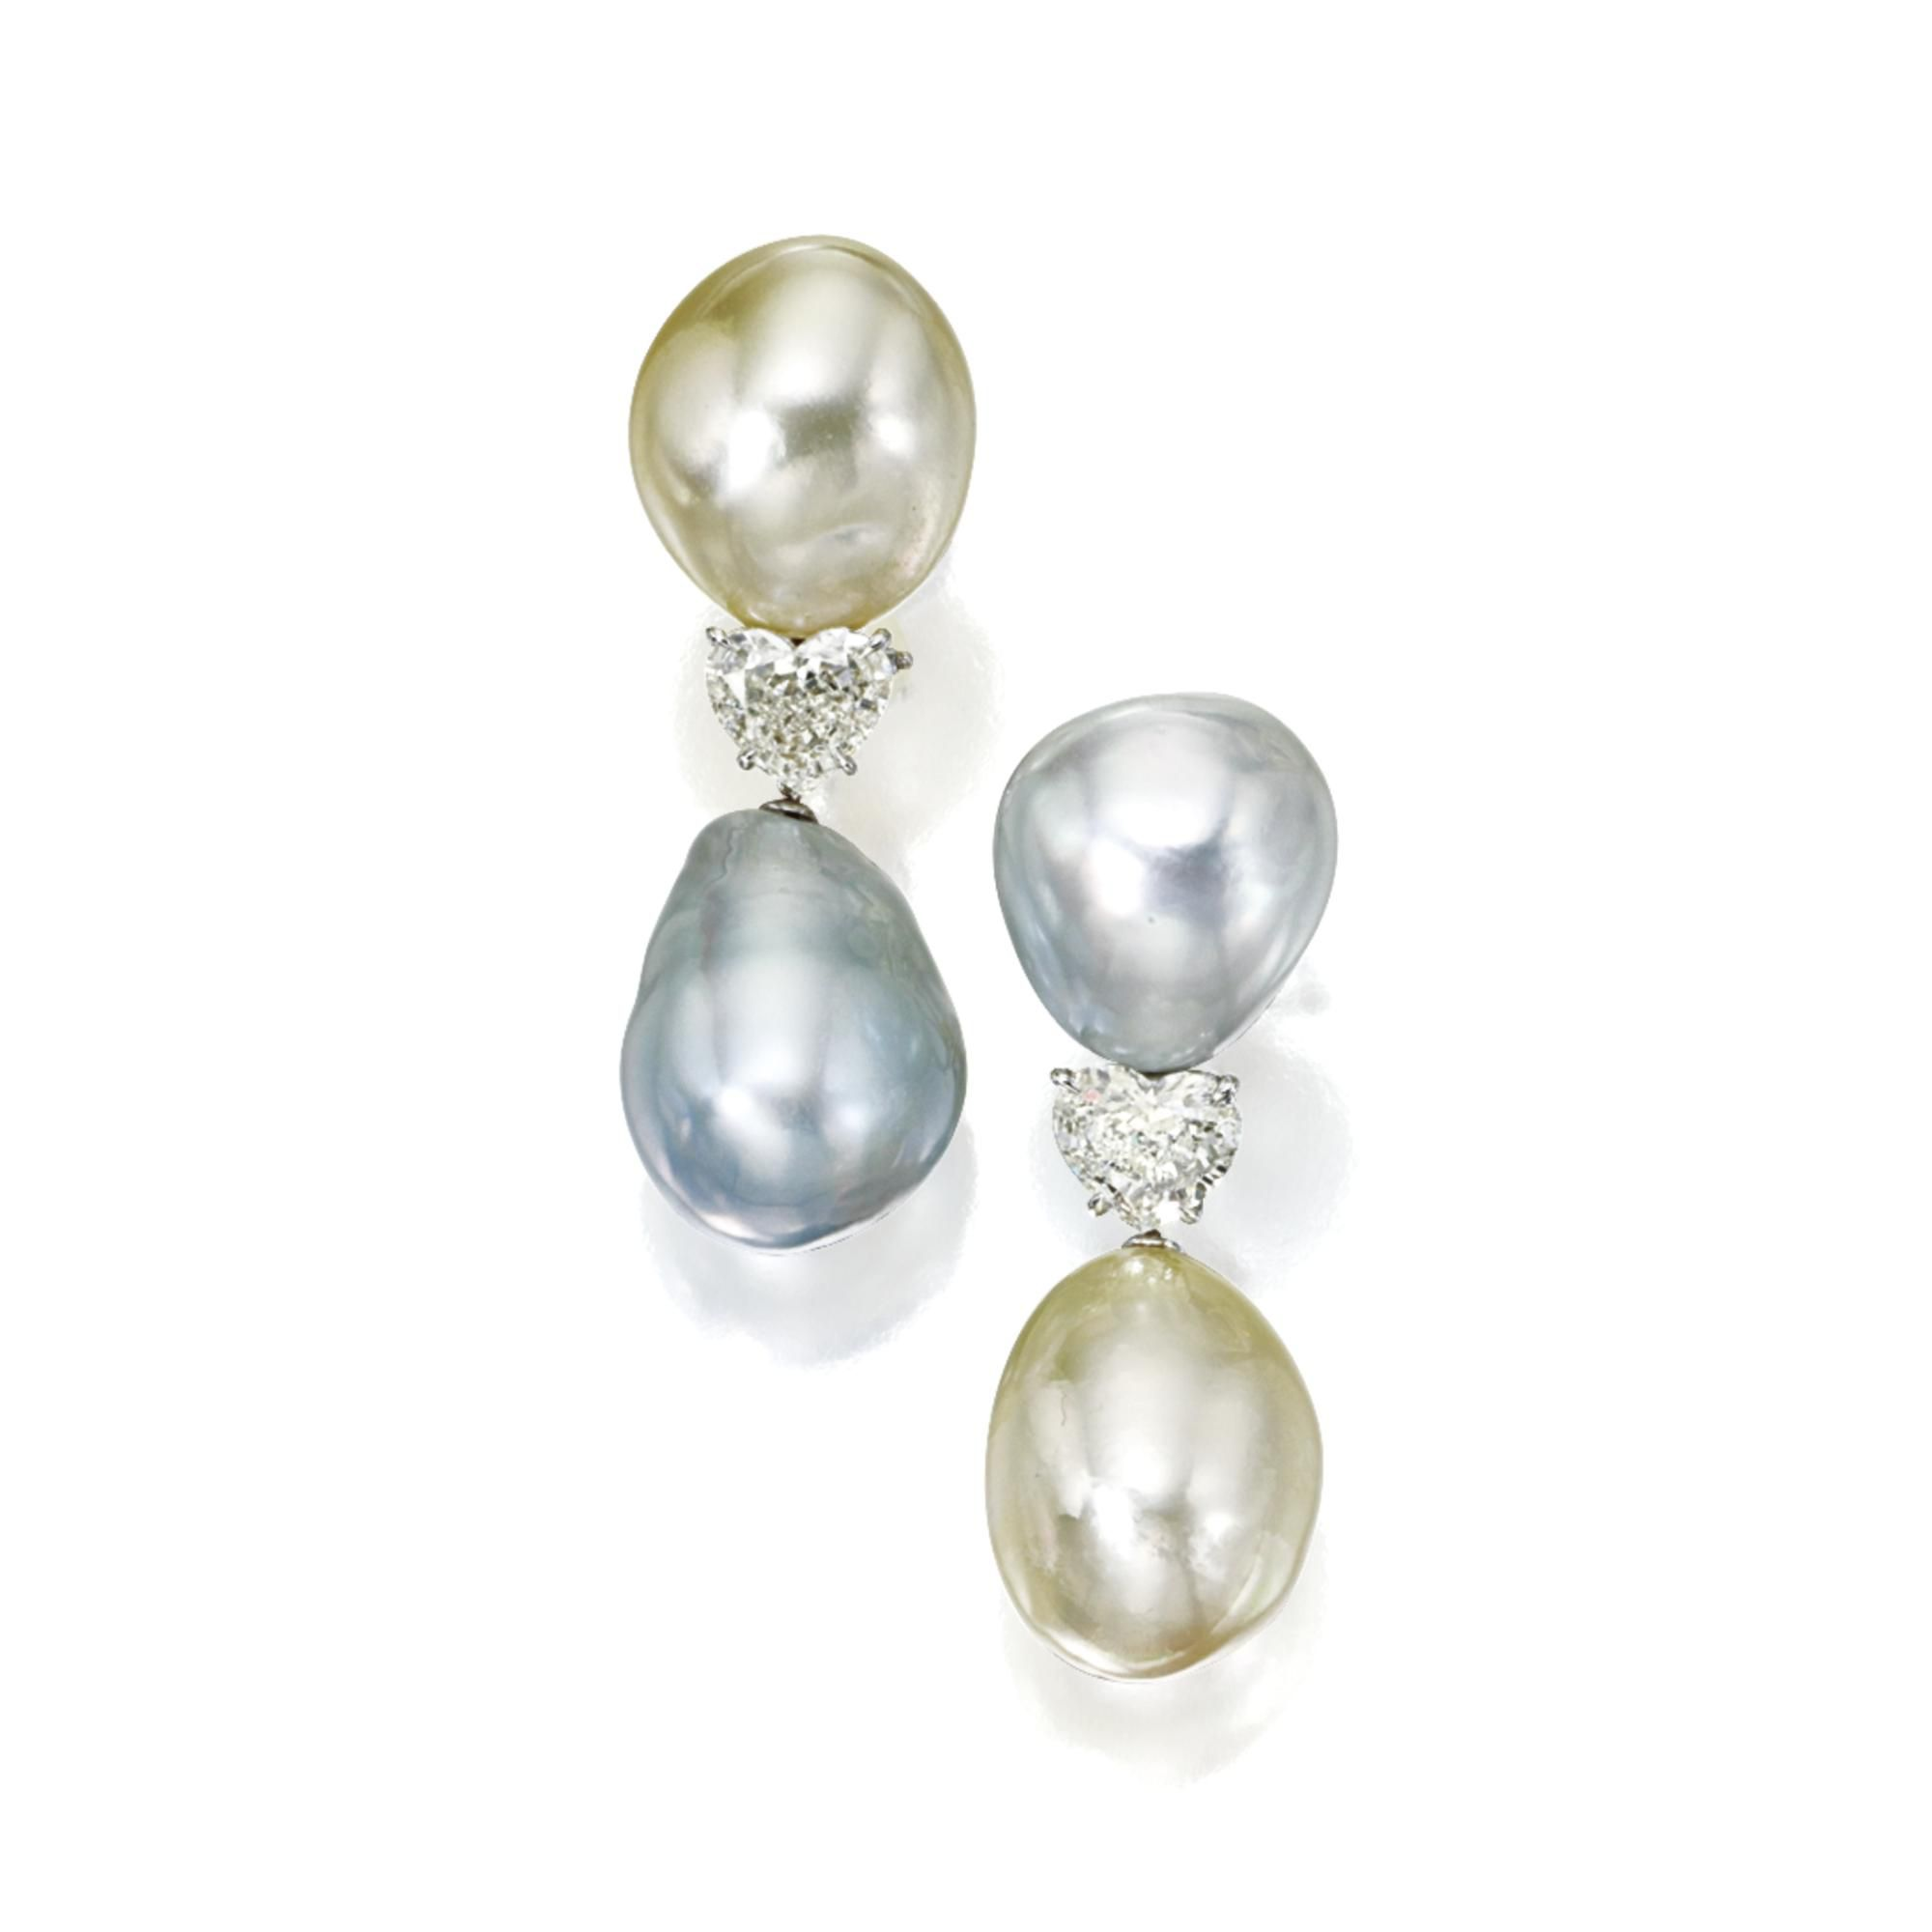 PAIR OF CULTURED PEARL AND DIAMOND PENDANT-EARCLIPS The tops set with 2 baroque cultured pearls of natural pale gold and light gray color, measuring approximately 18.7 by 16.6 mm. and 18.1 by 16.0 mm. respectively, supporting 2 cultured pearl drop pendants of natural light gray and pale gold hue, measuring approximately 21.8 by 17.1 mm. and 21.4 by 16.5 mm., separated by 2 heart-shaped diamonds weighing 1.71 and 1.80 carats, mounted in platinum. Estimate 35,000 — 45,000